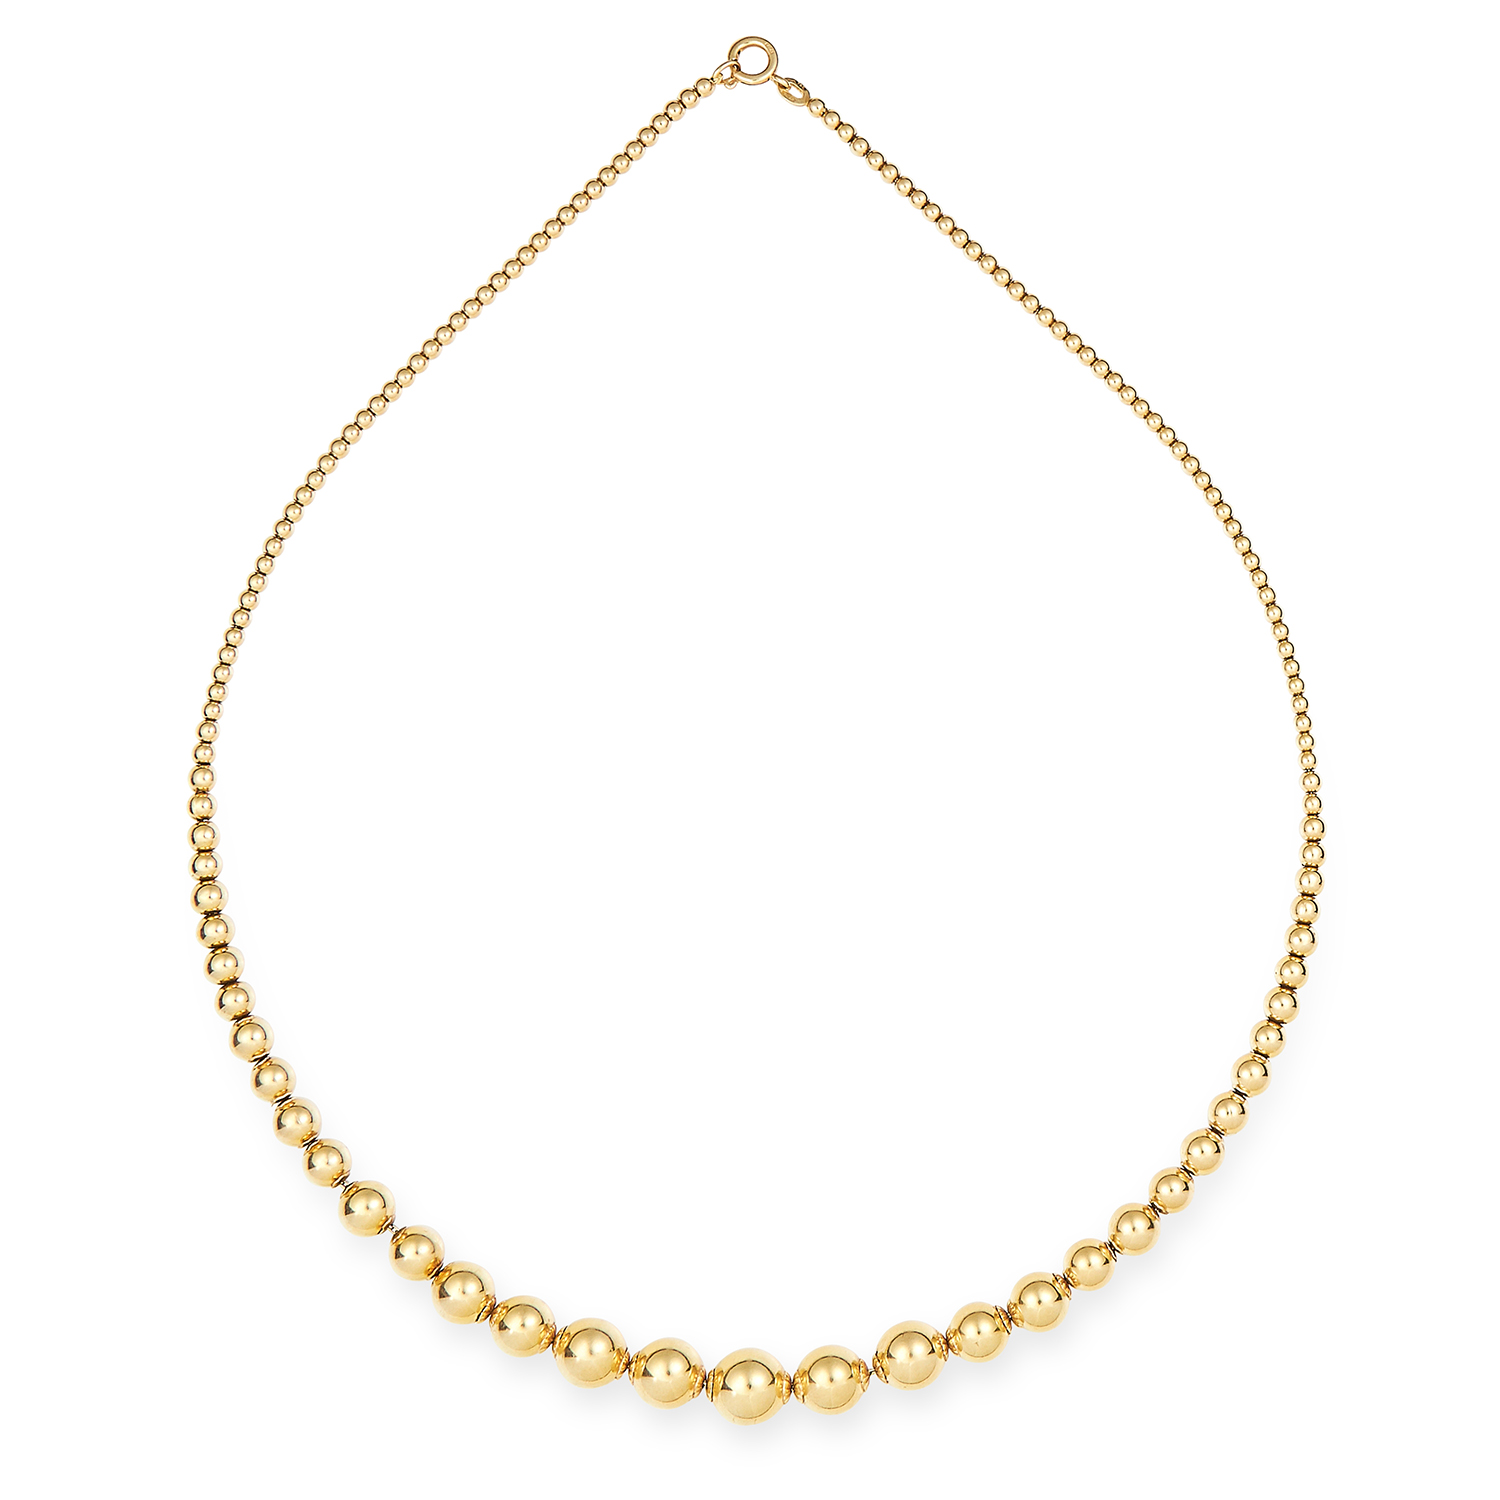 GOLD BEAD NECKLACE in 18ct yellow gold, formed of graduating gold beads, stamped 750, 48.5 cm, 23.